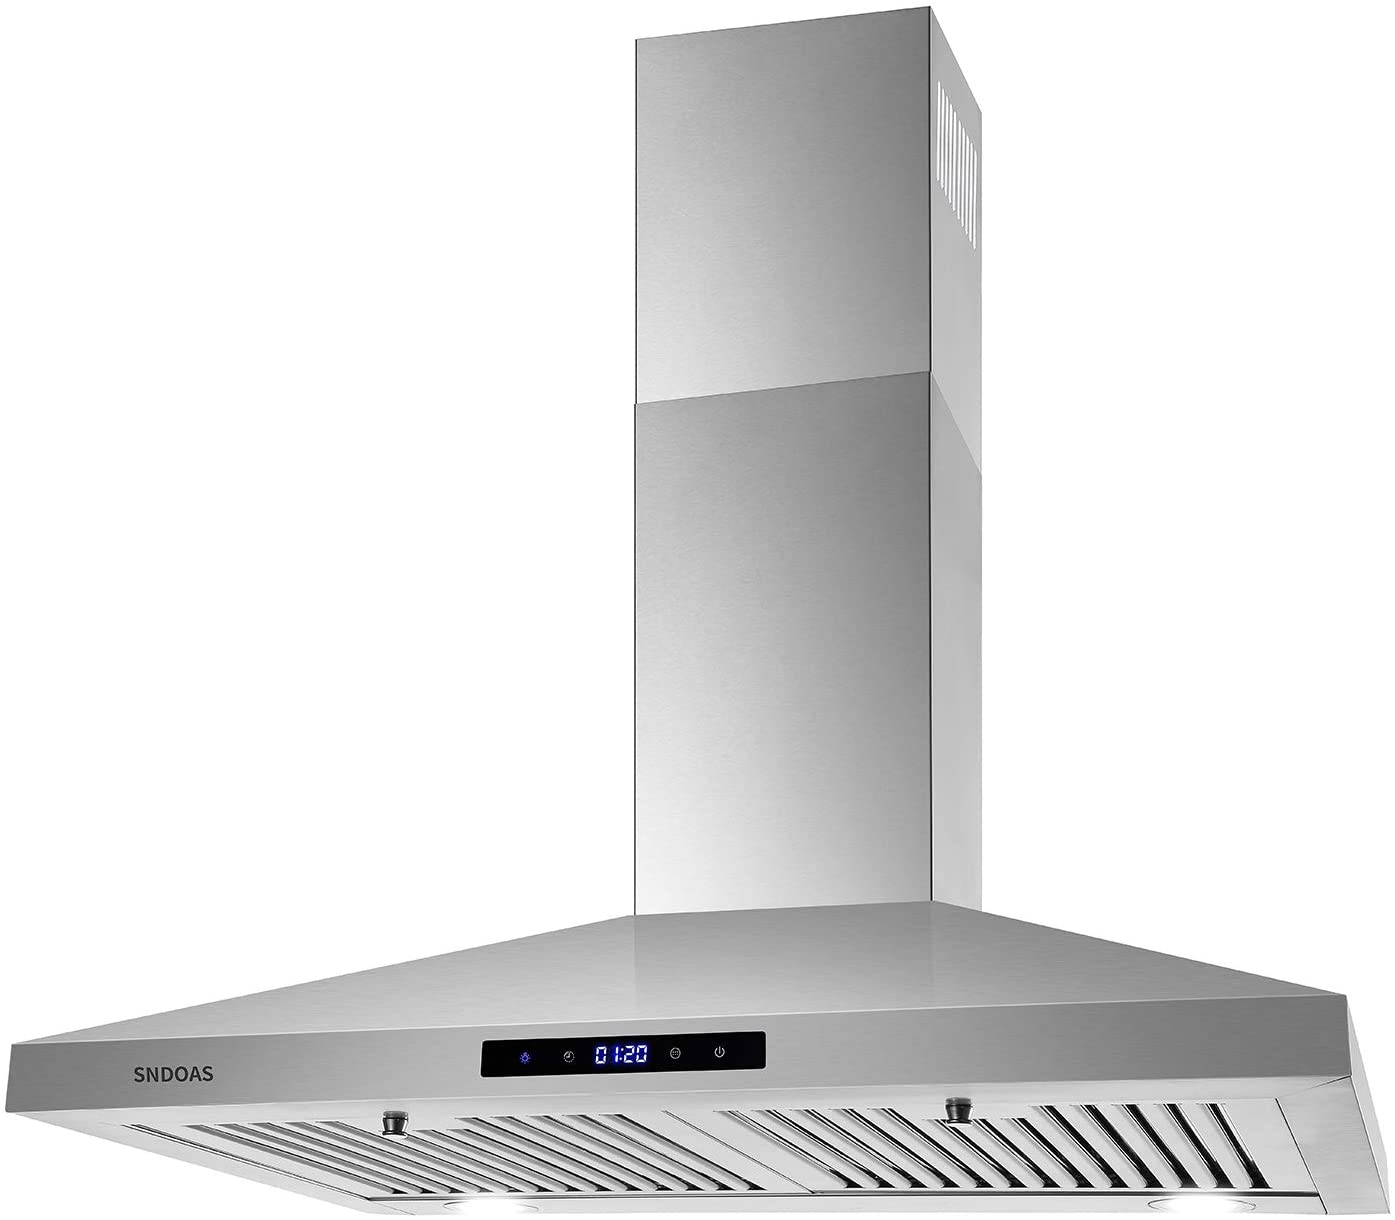 30 inch Wall Mount Range Hood, Stainless Steel Kitchen Hood with 2 LED Lights,Touch Control Kitchen Vent Hood, Ducted/Ductless Convertible, Ceiling Chimney-Style Stove Vent Hood,SNDOAS